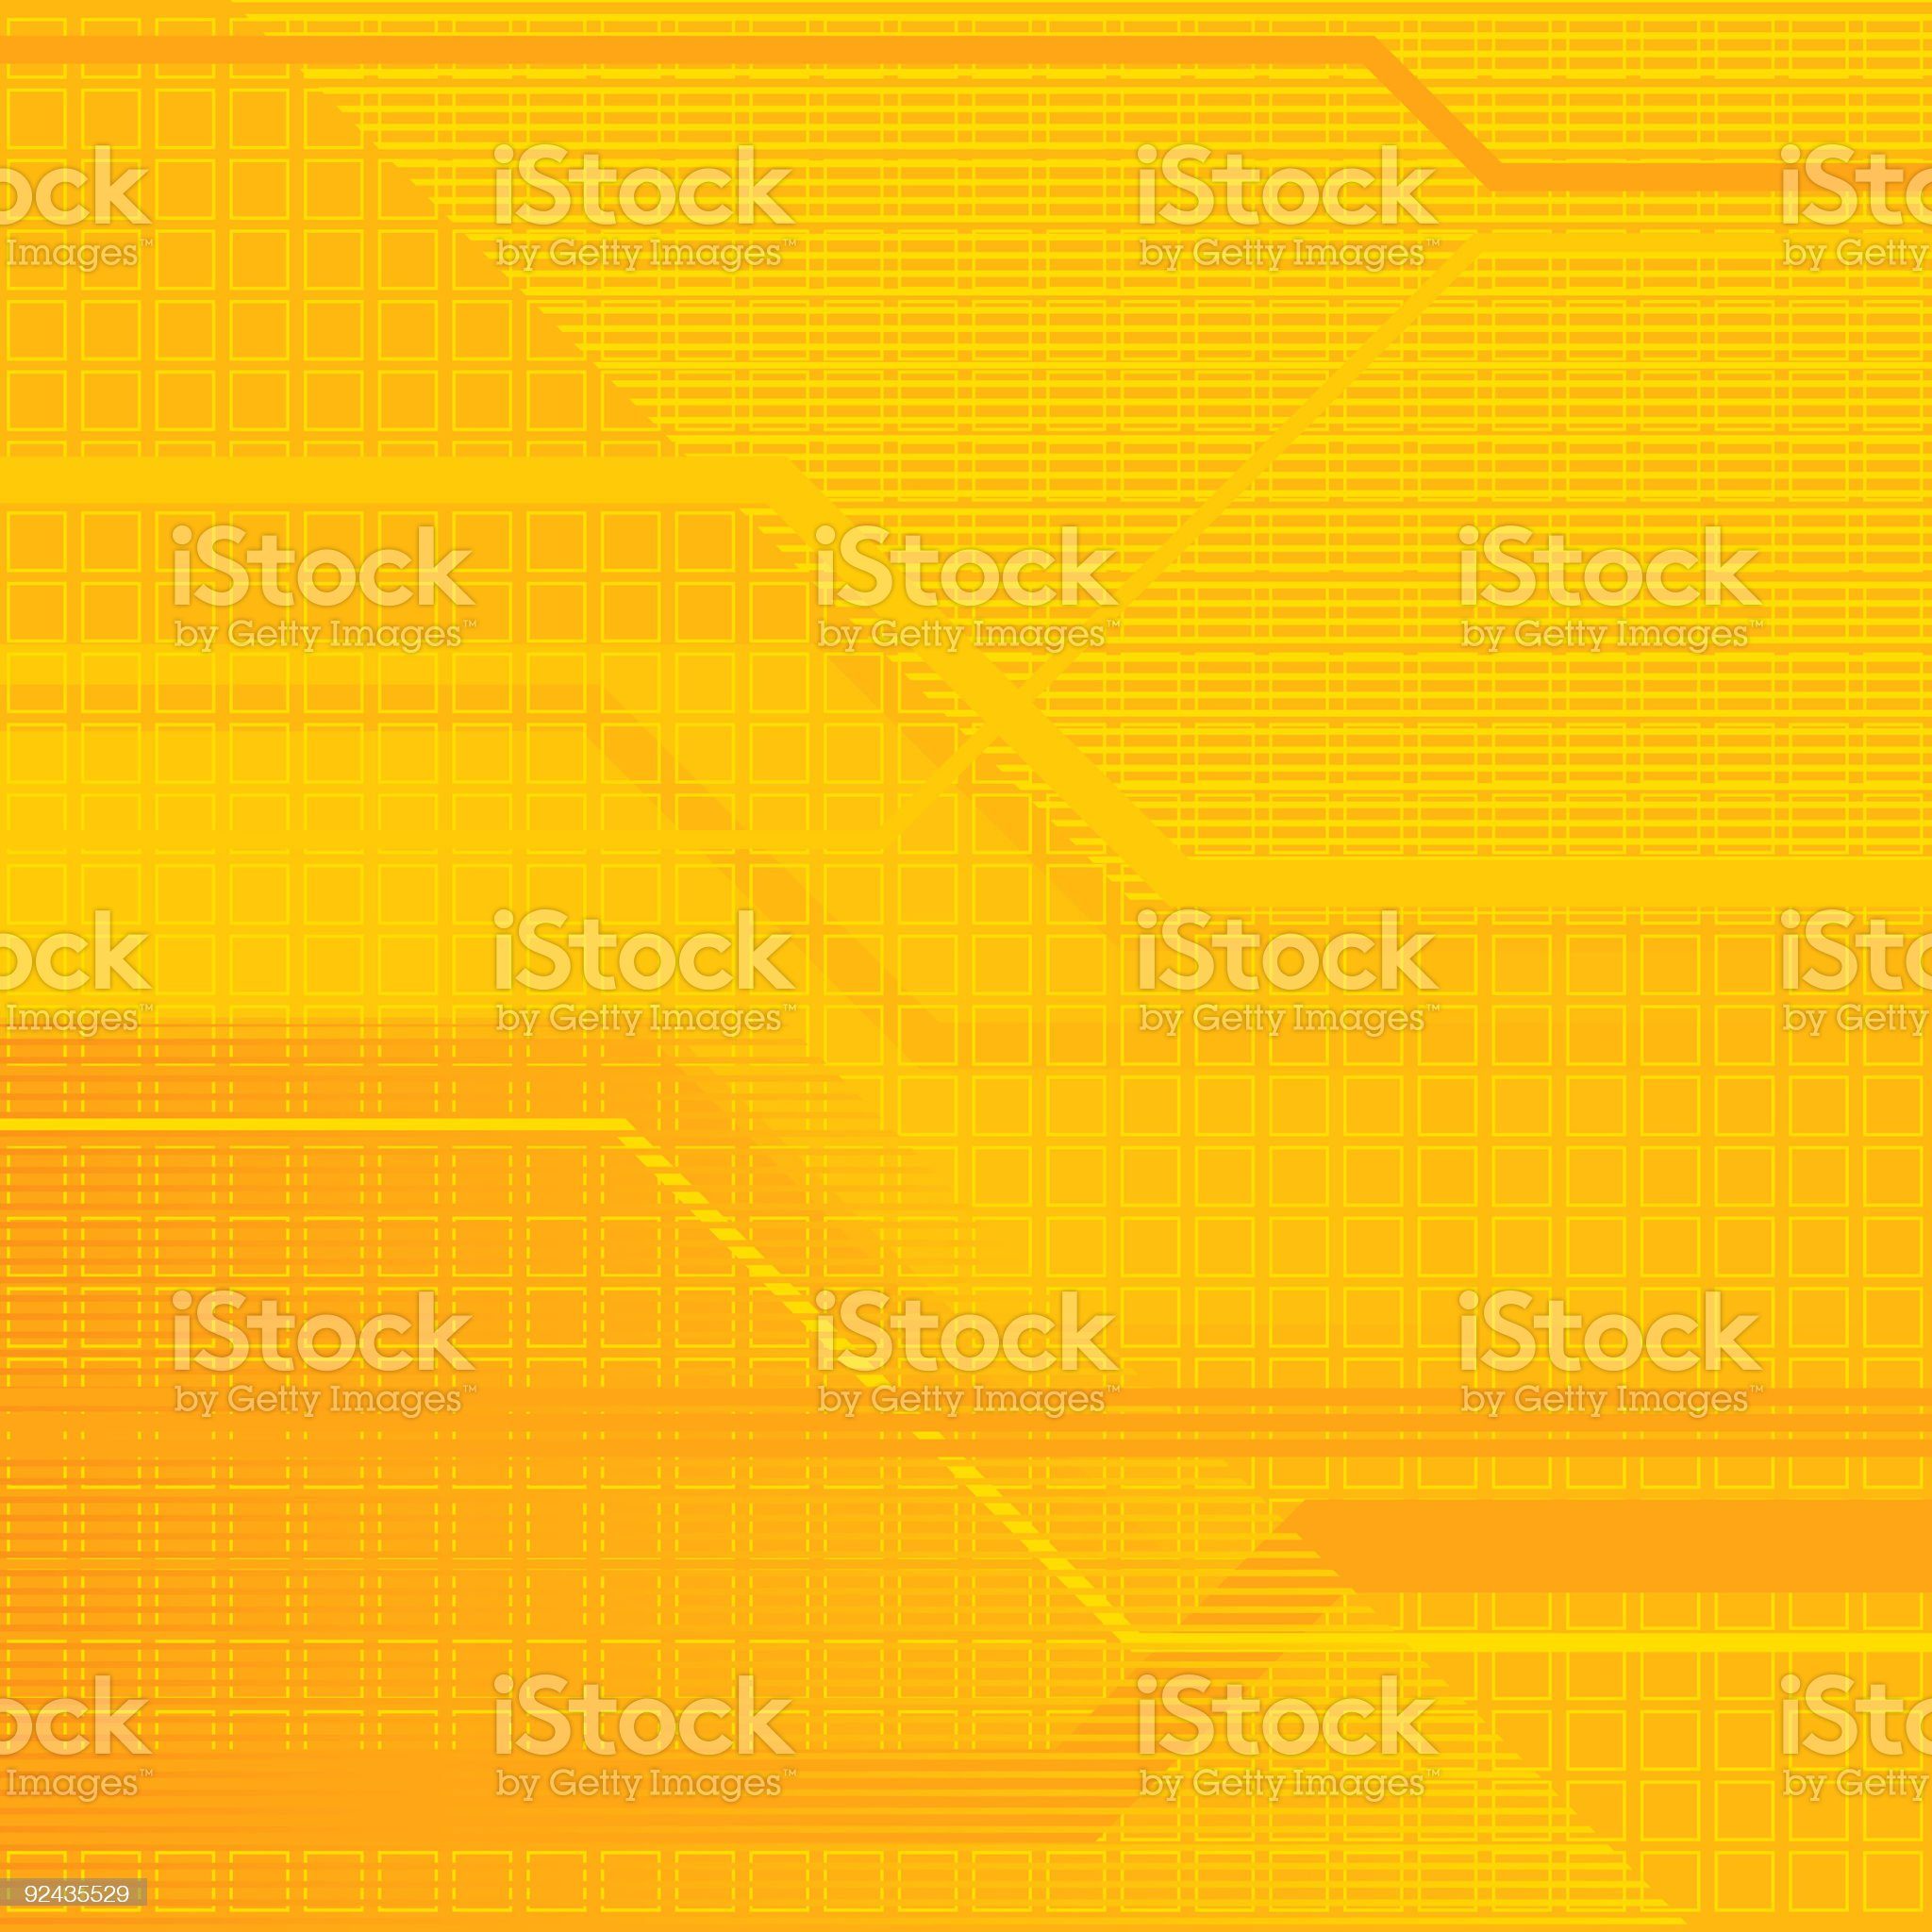 Abstract yellow and gold square and line background royalty-free stock vector art